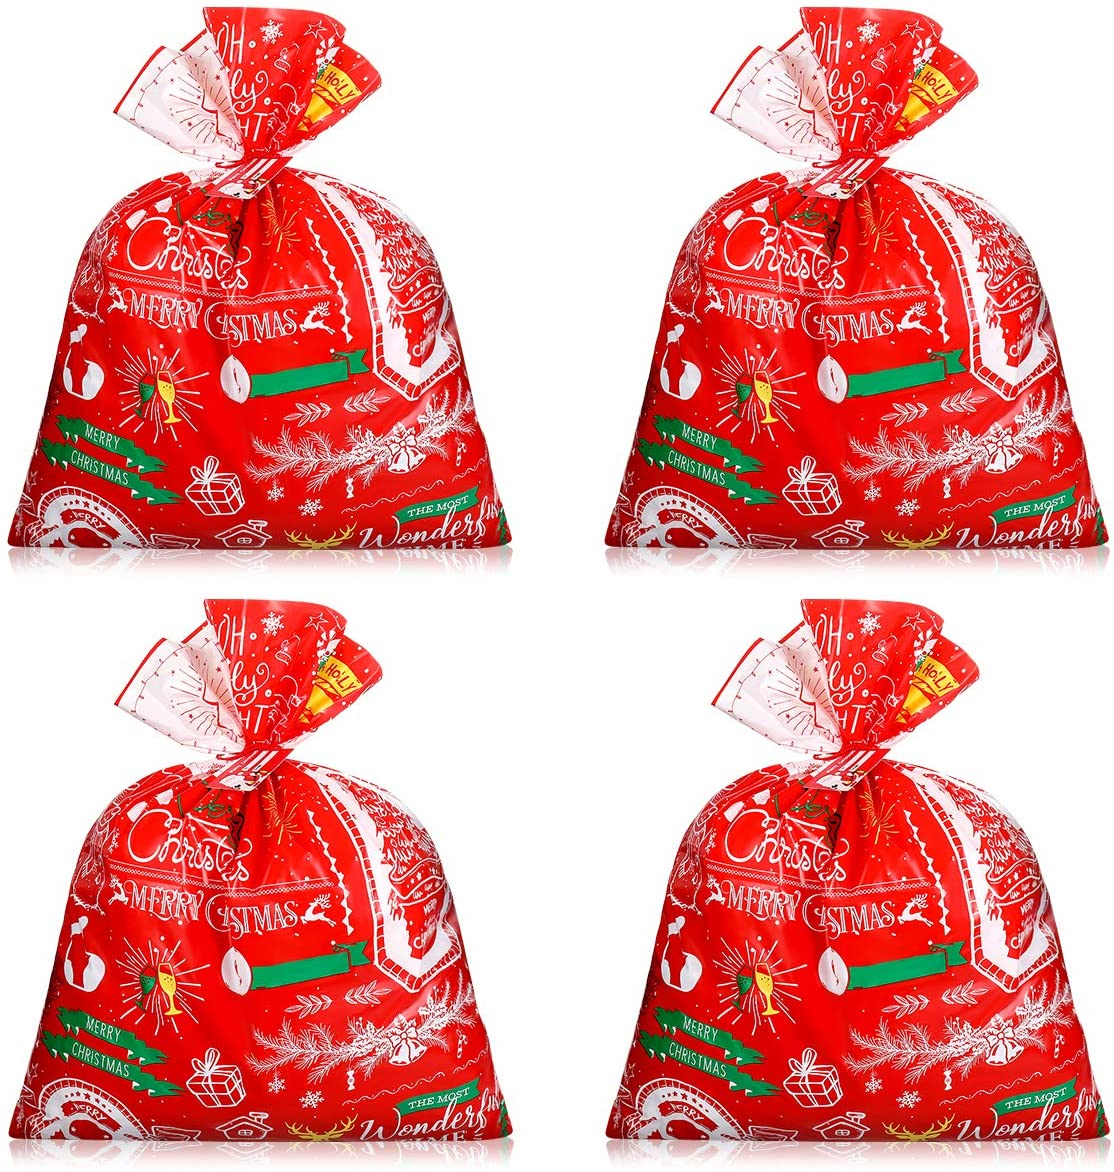 Cabilock Christmas Bags Festive Large Capacity Xmas Goody Bags Christmas Wrapping Bags Storage Pouches for Xmas Party Holidays 4pcs